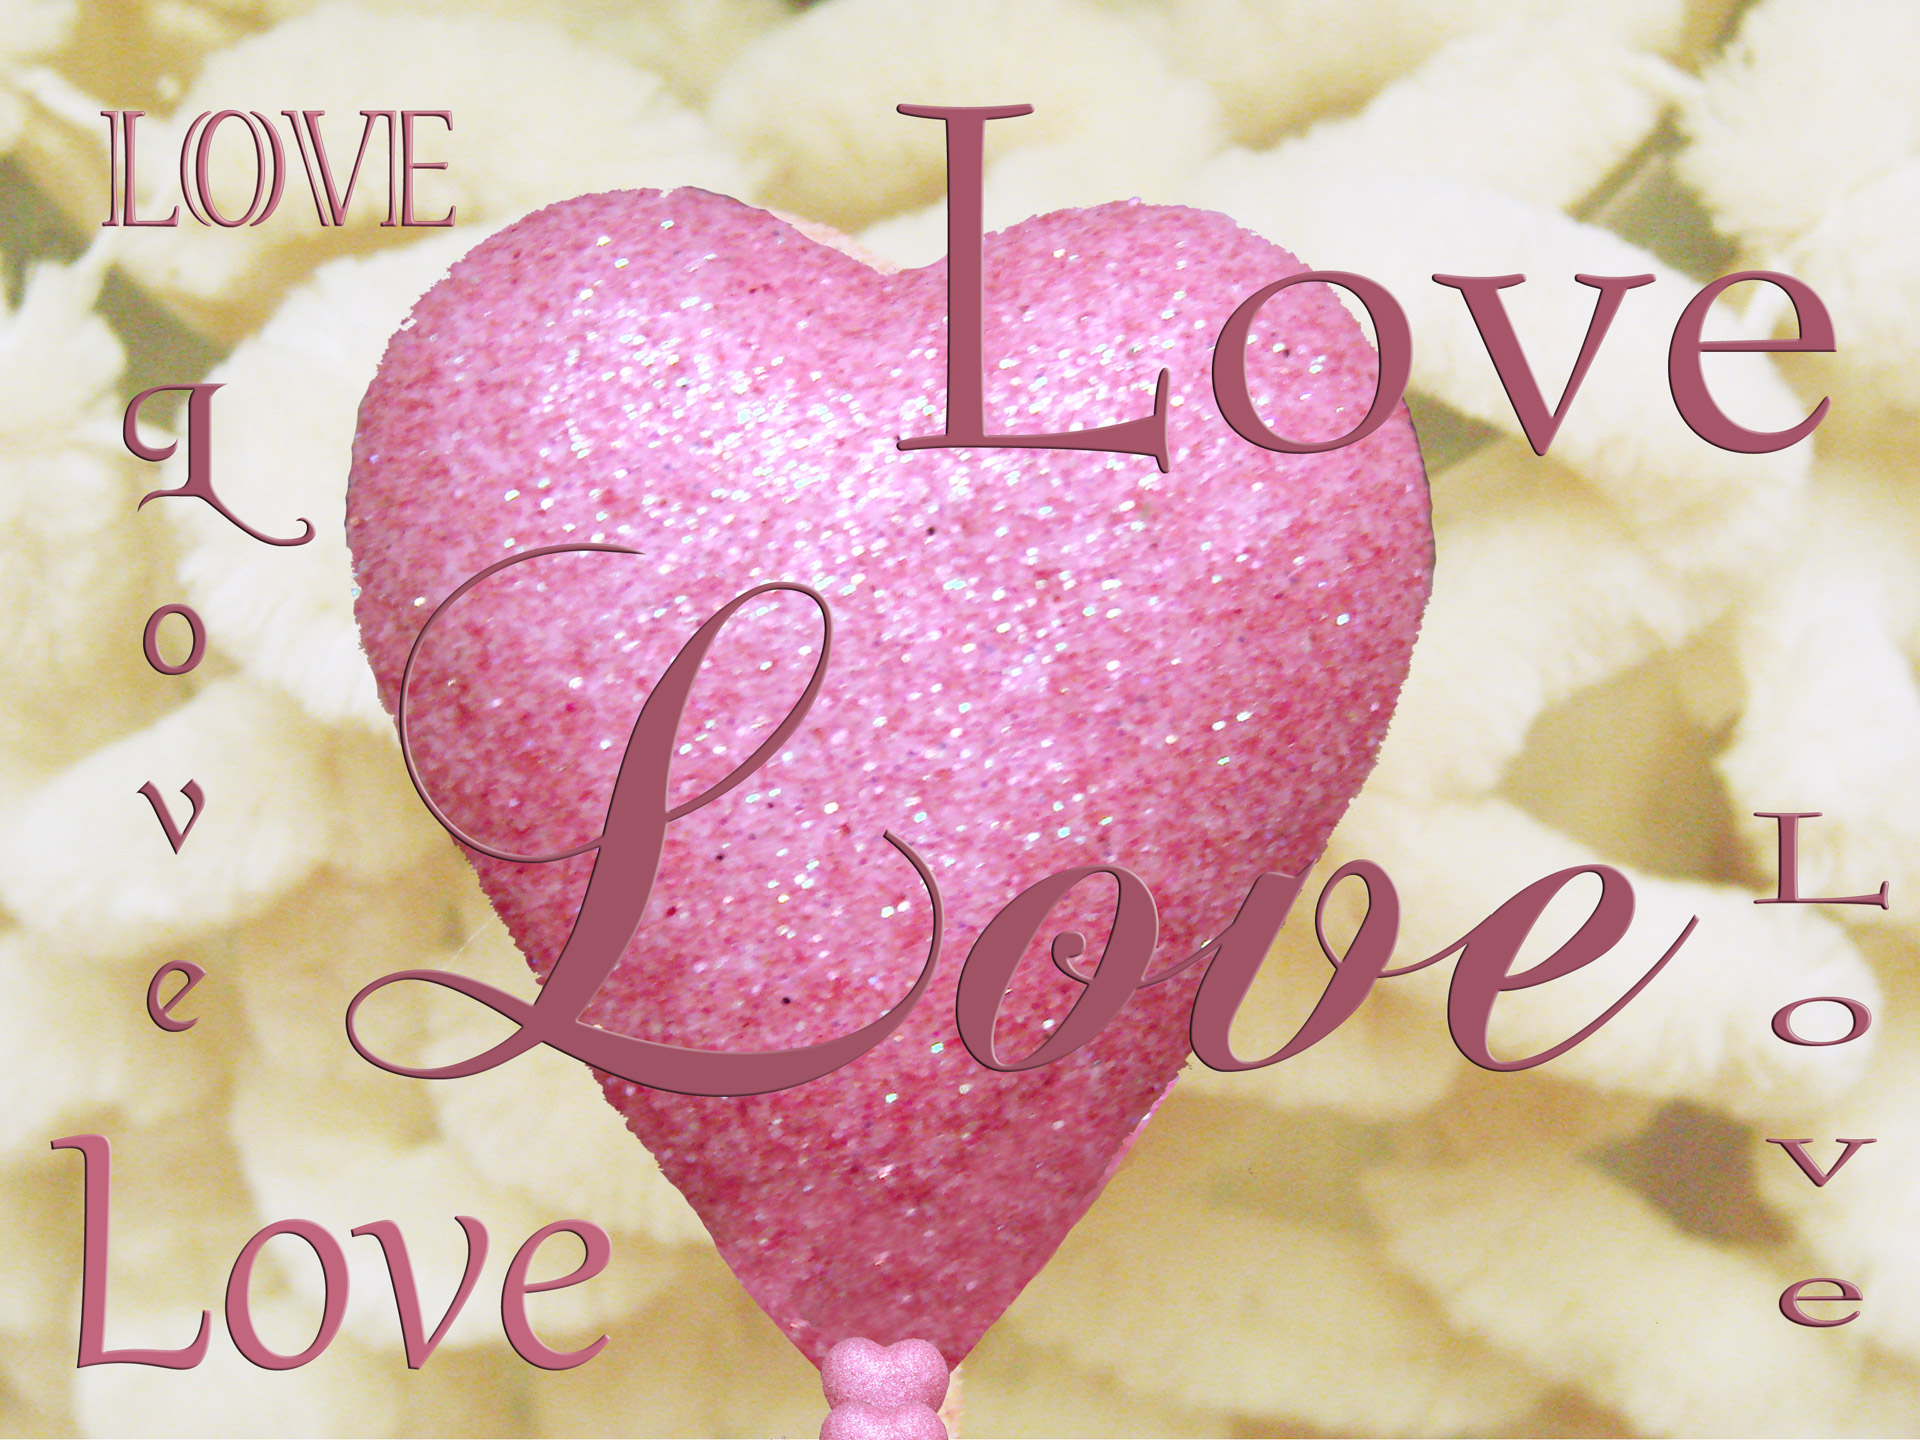 Top Quotes Wallpaper Love Amp Glitter Free Stock Photo Public Domain Pictures